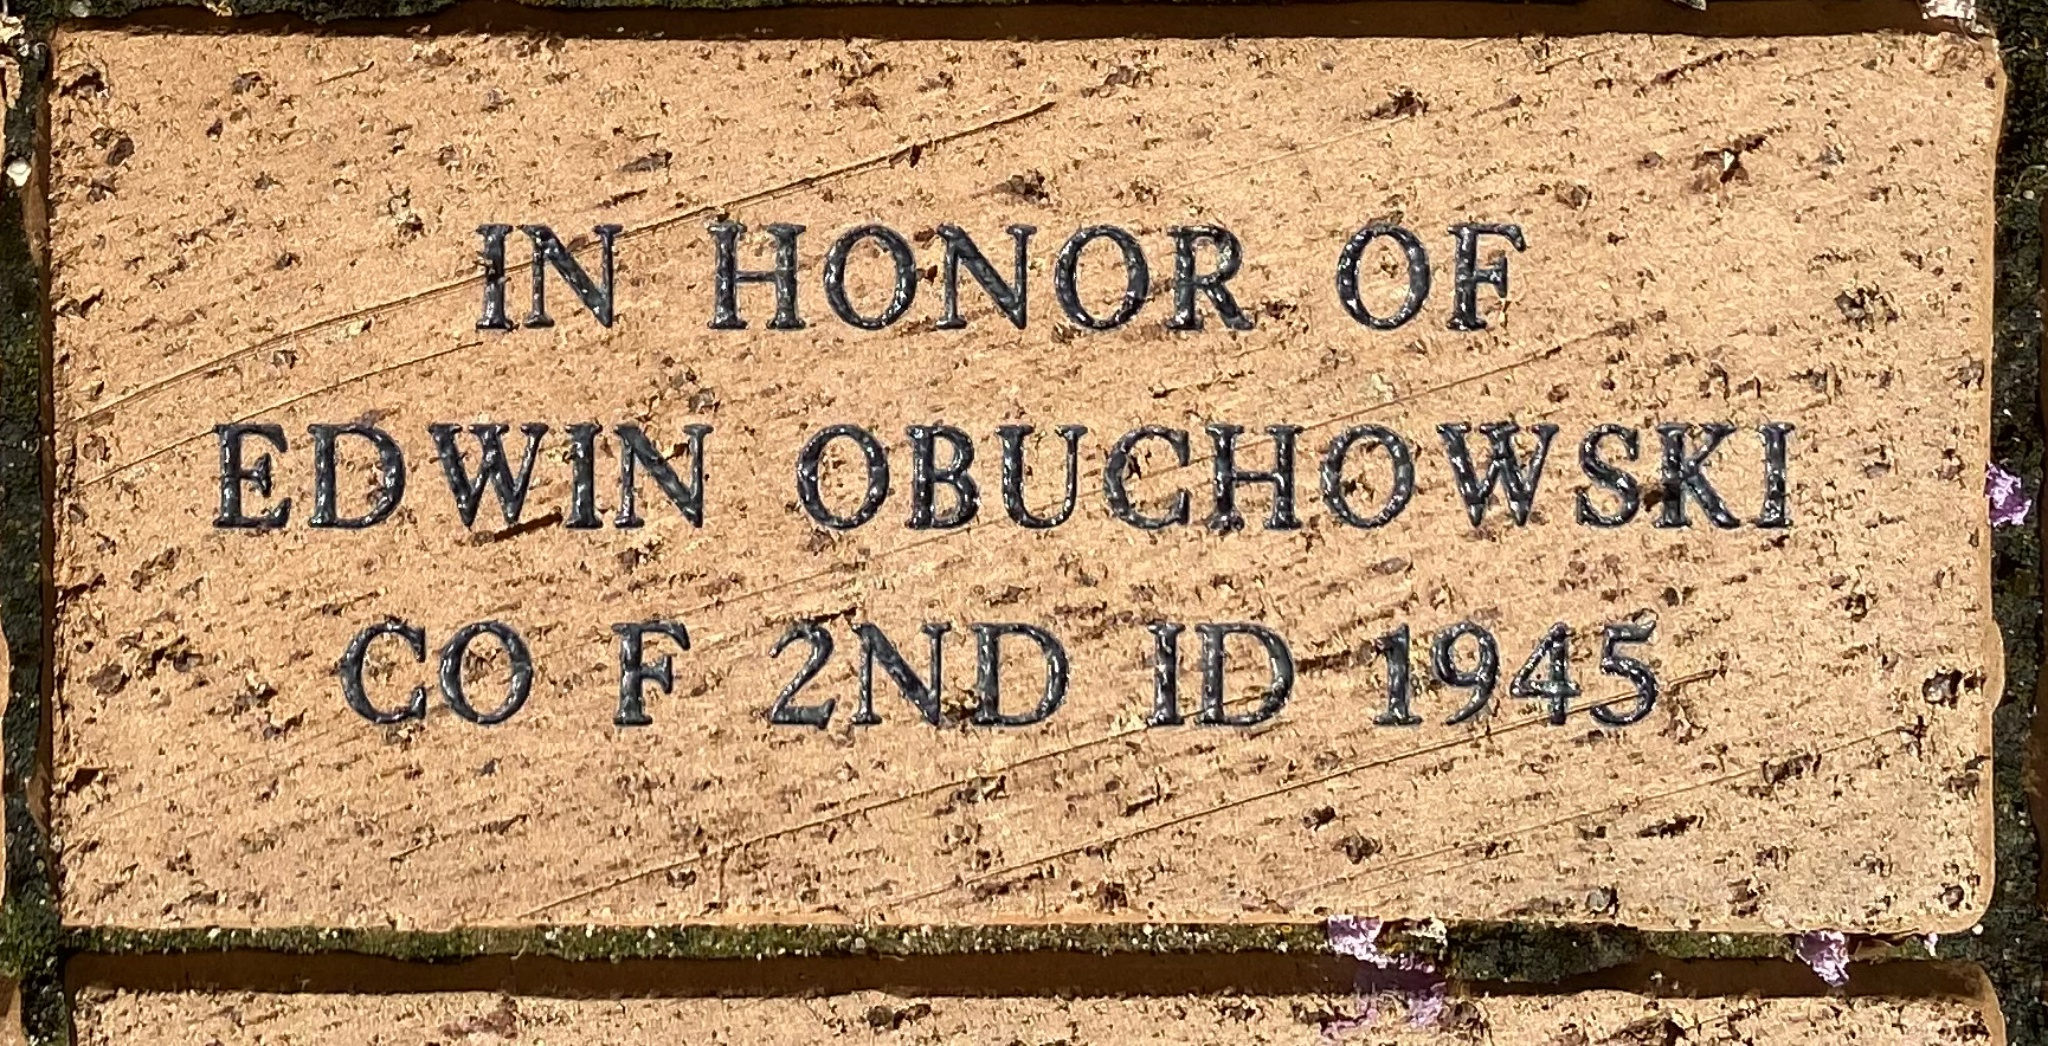 IN HONOR OF EDWIN OBUCHOWSKI CO F 2ND ID 1945